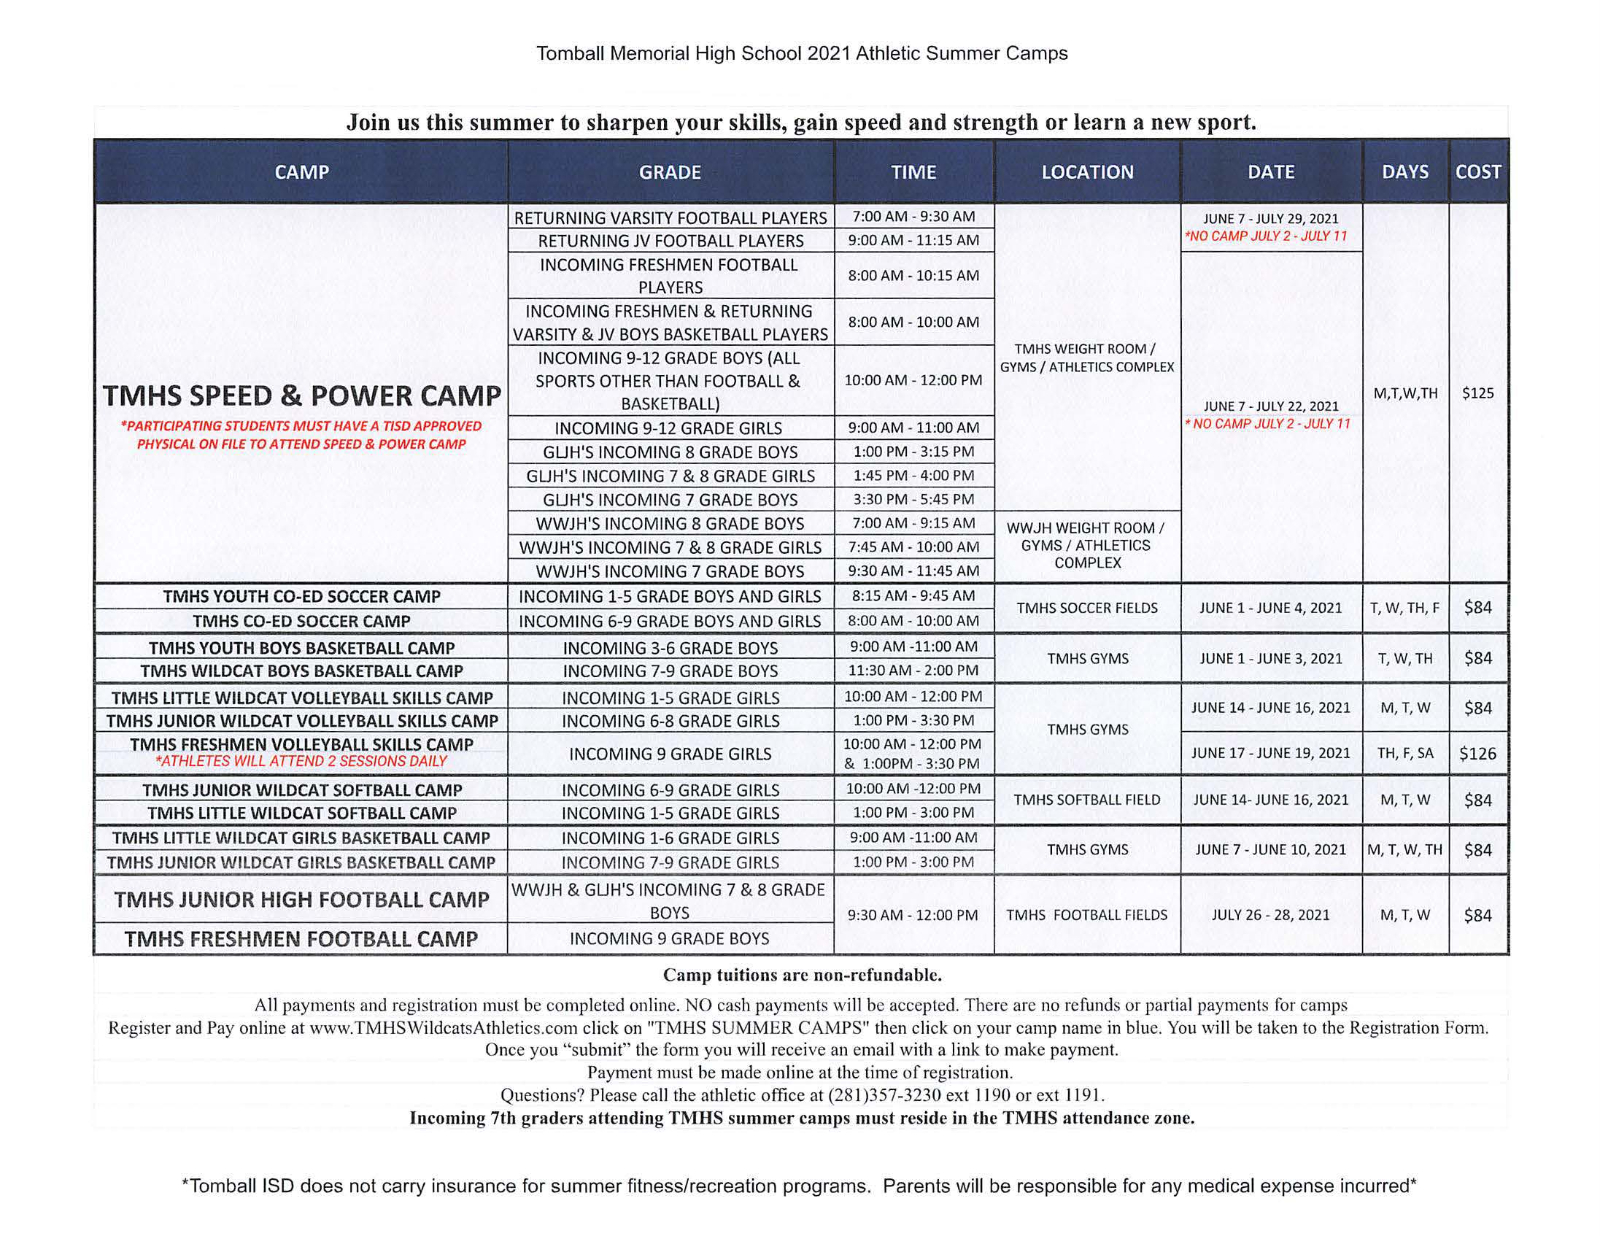 TMHS Summer Camps